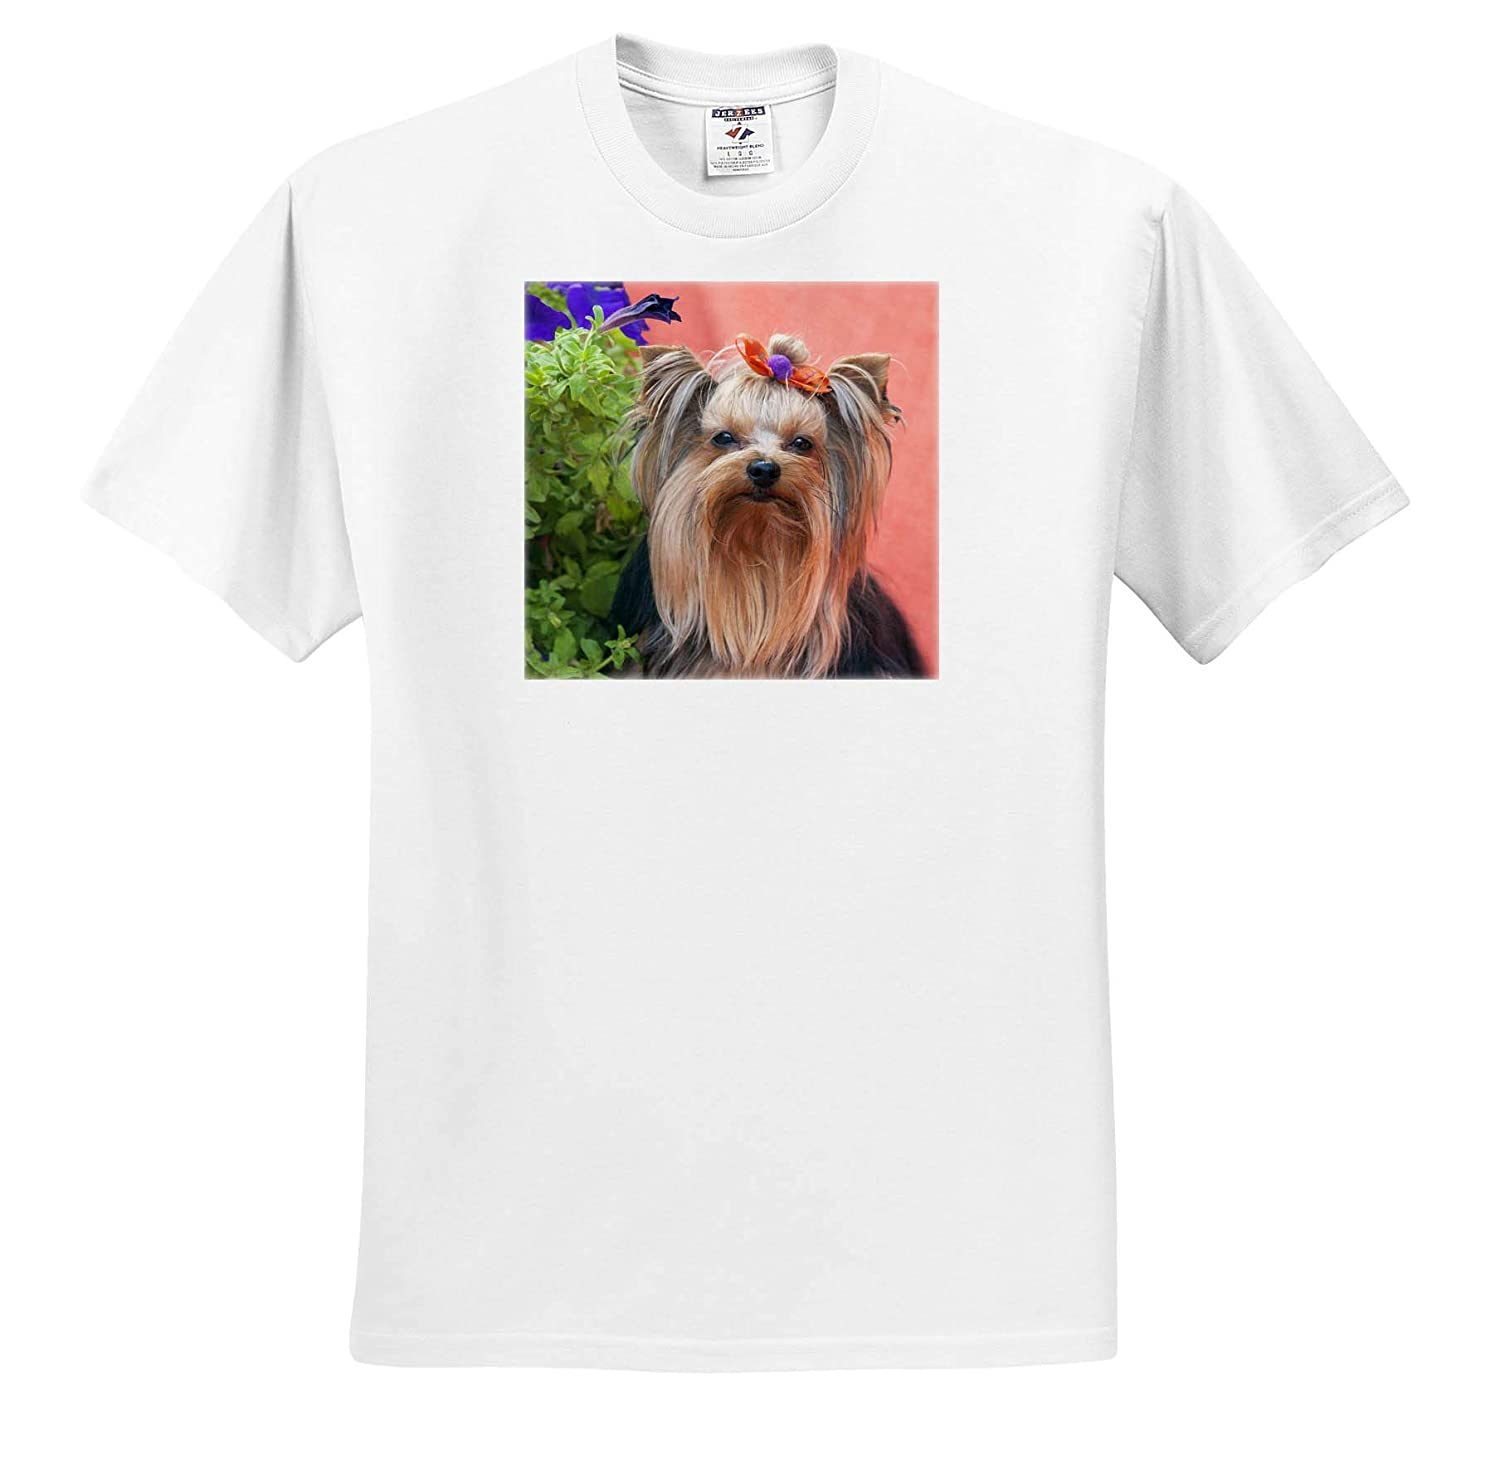 3dRose Danita Delimont ts/_314006 Yorkshire Terrier with Potted Flowers Adult T-Shirt XL Dogs